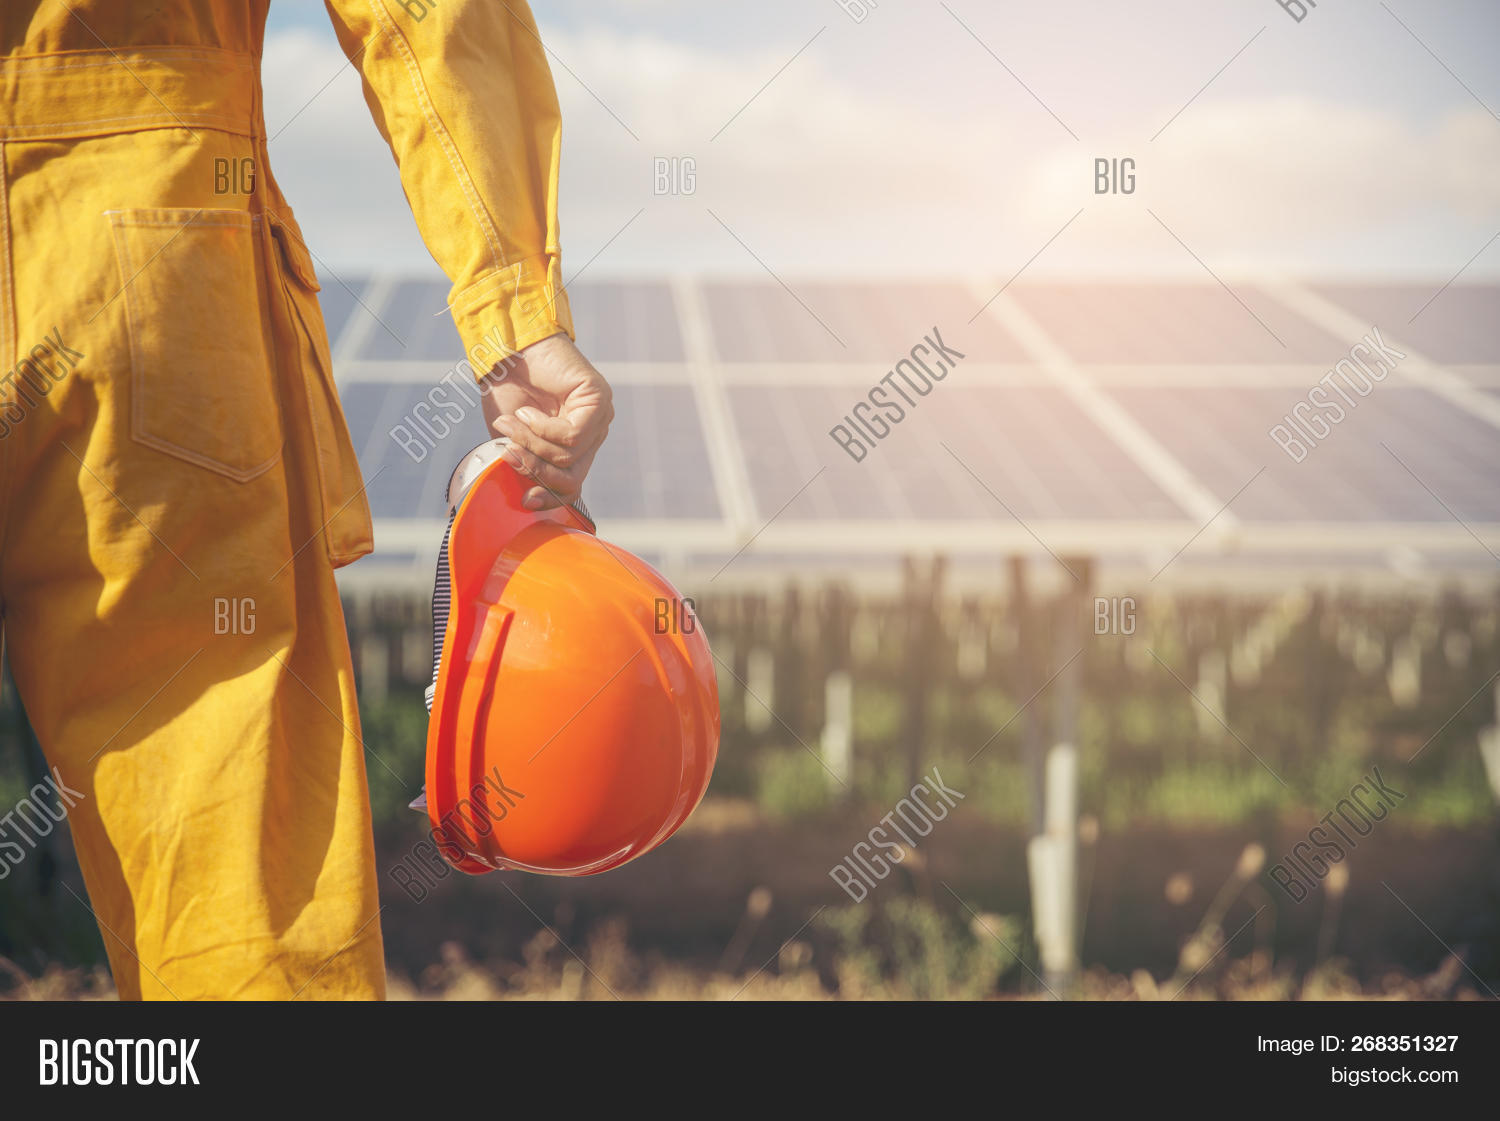 background,building,business,clean,concept,construction,contractor,electrical,employee,energy,engineer,environment,equipment,foreman,green,hard,hardhat,hat,health,helmet,holding,industrial,industry,job,labor,looking,male,men,occupation,officer,orange,panel,people,person,plant,power,professional,project,protection,safety,site,solar,suit,sustainable,technician,technology,wearing,work,worker